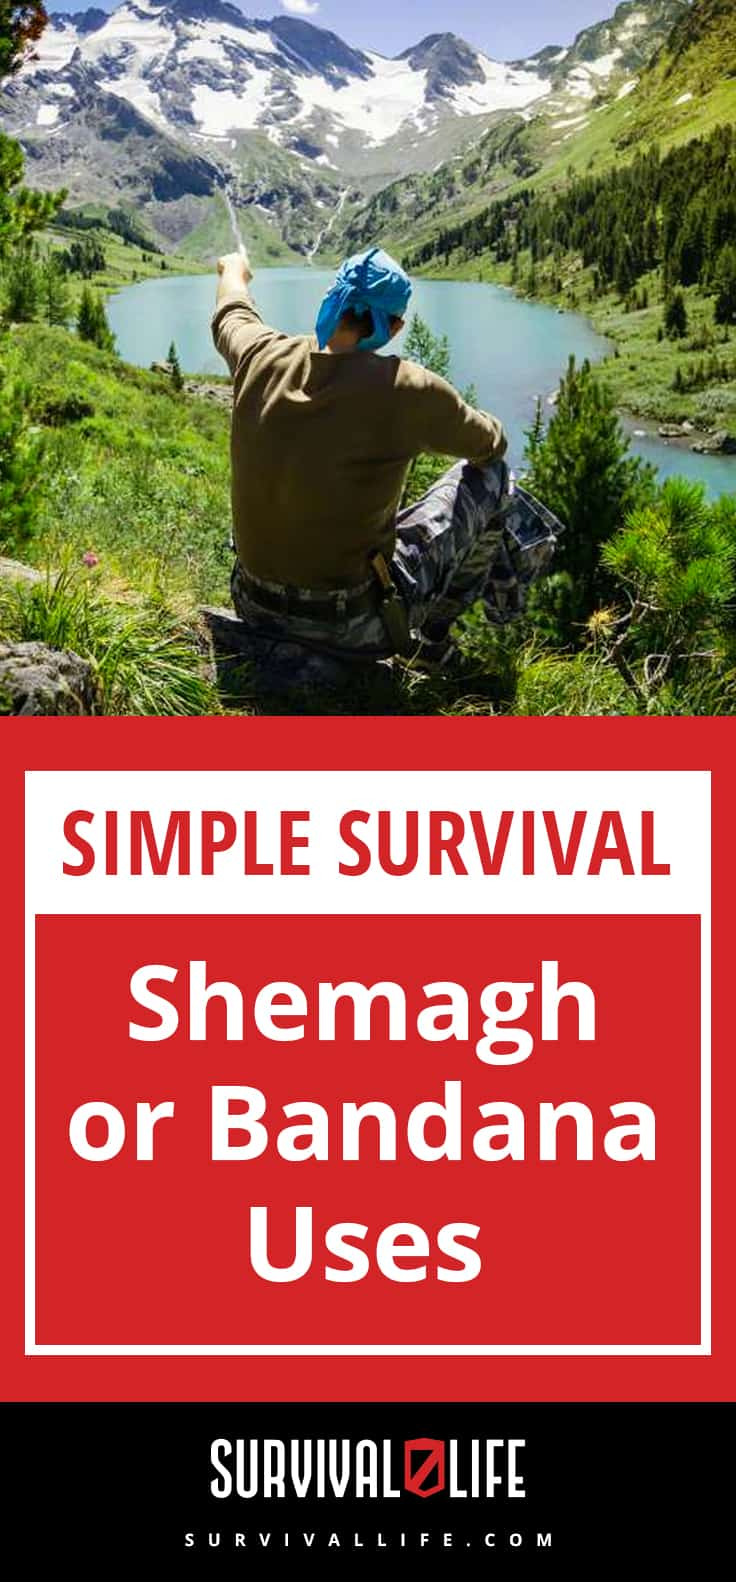 Shemagh or Bandana Uses   Simple Survival